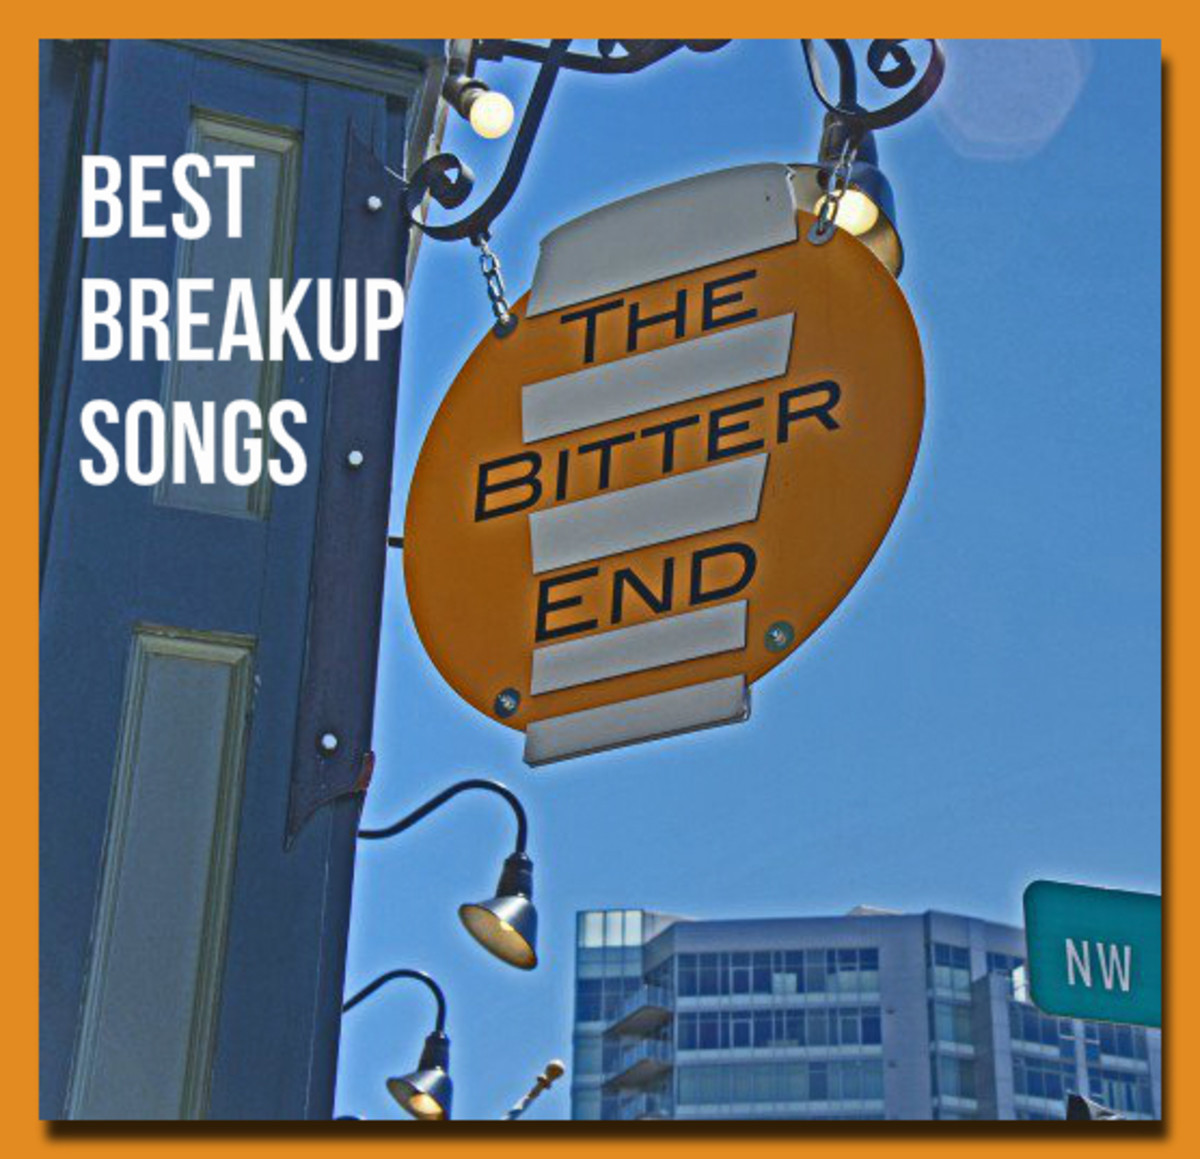 109 Songs About Break Ups, Heartbreak, and Divorce